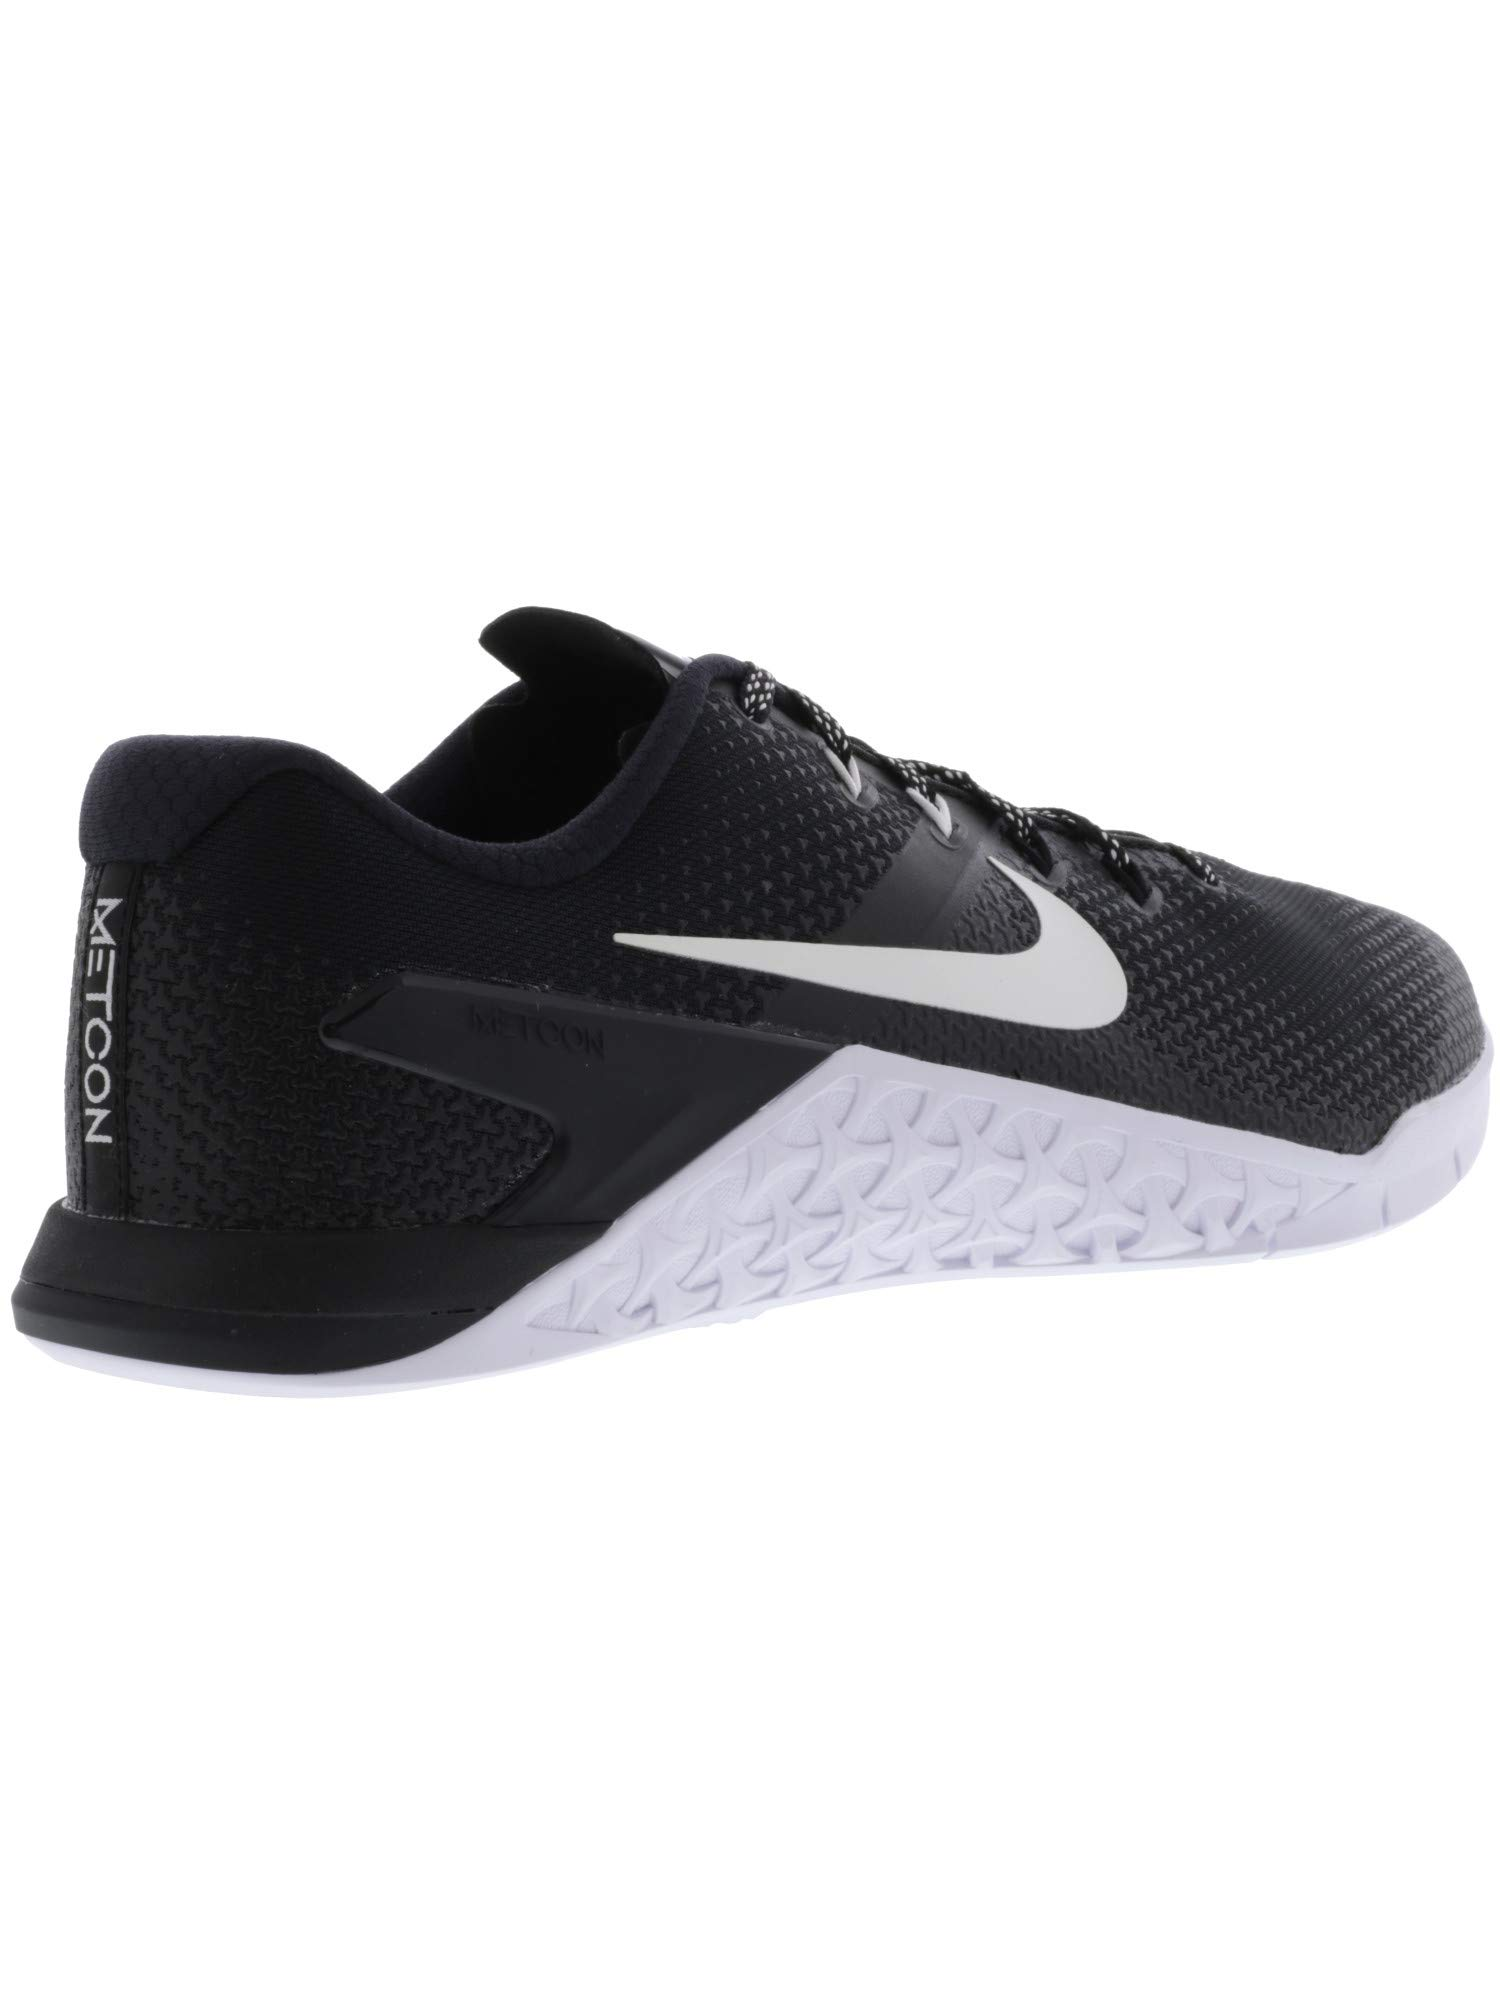 Nike Men's Metcon 4 Black/White Ankle-High Cross Trainer Shoe - 7M by Nike (Image #5)